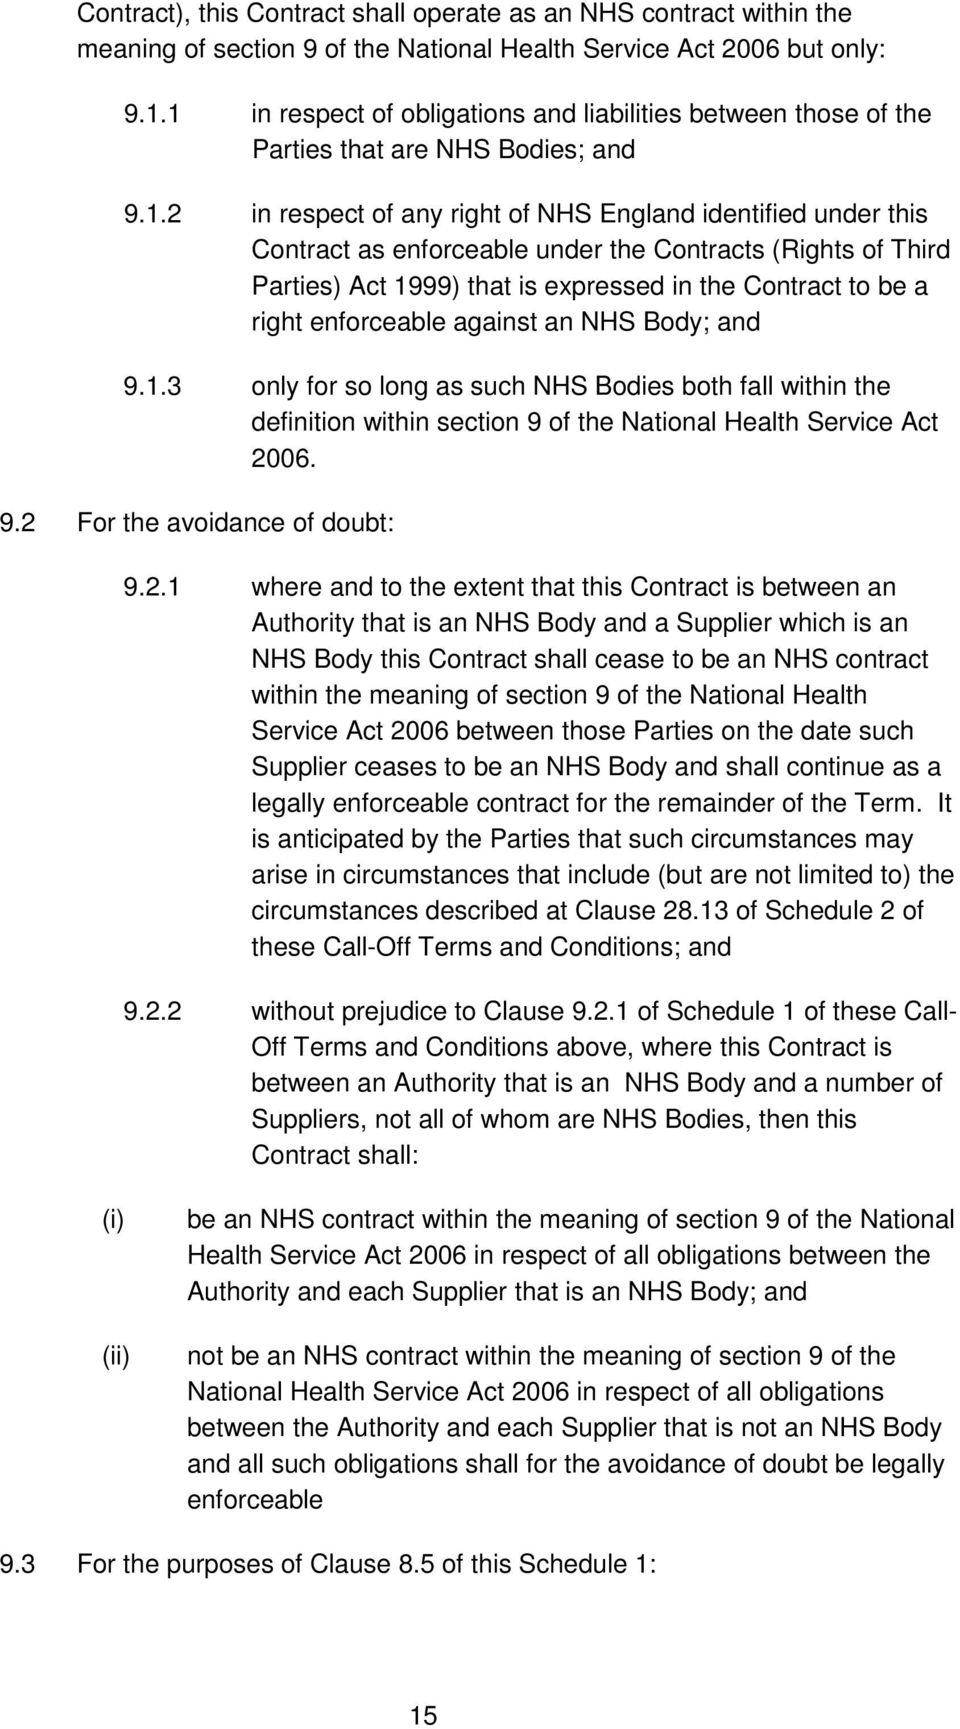 Contracts (Rights of Third Parties) Act 1999) that is expressed in the Contract to be a right enforceable against an NHS Body; and 9.1.3 only for so long as such NHS Bodies both fall within the definition within section 9 of the National Health Service Act 2006.